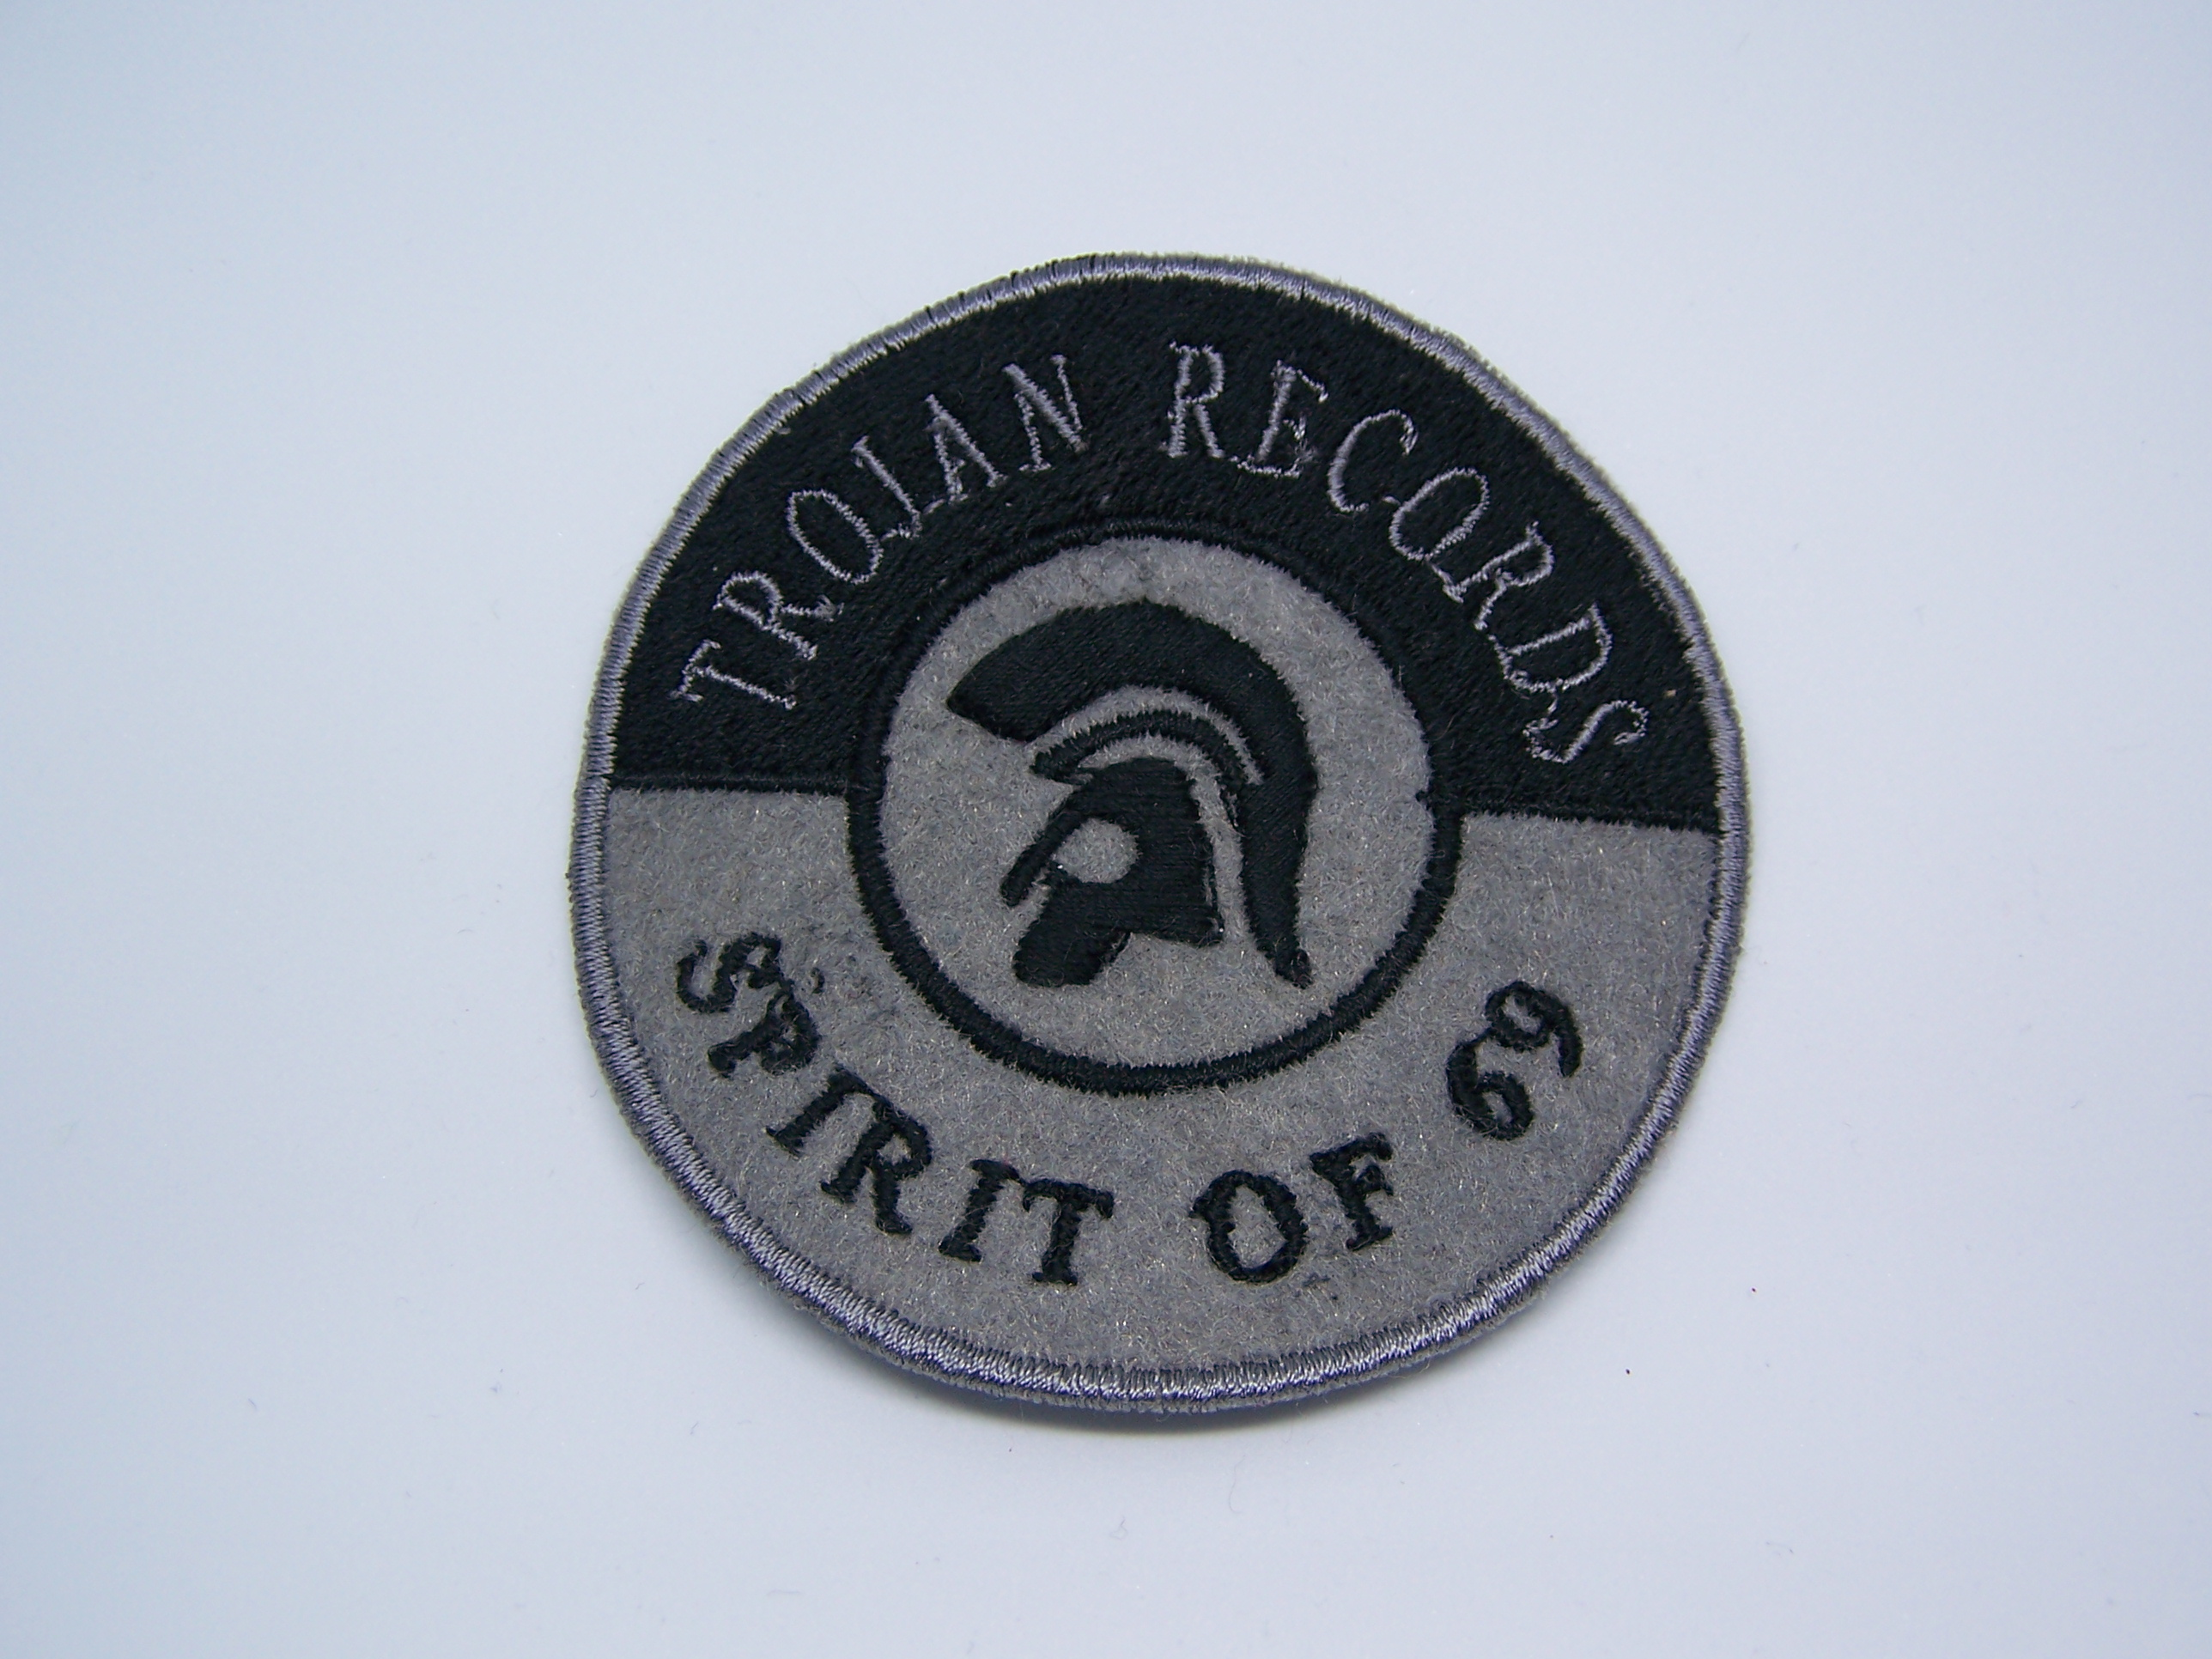 Trojan records spirit of 69